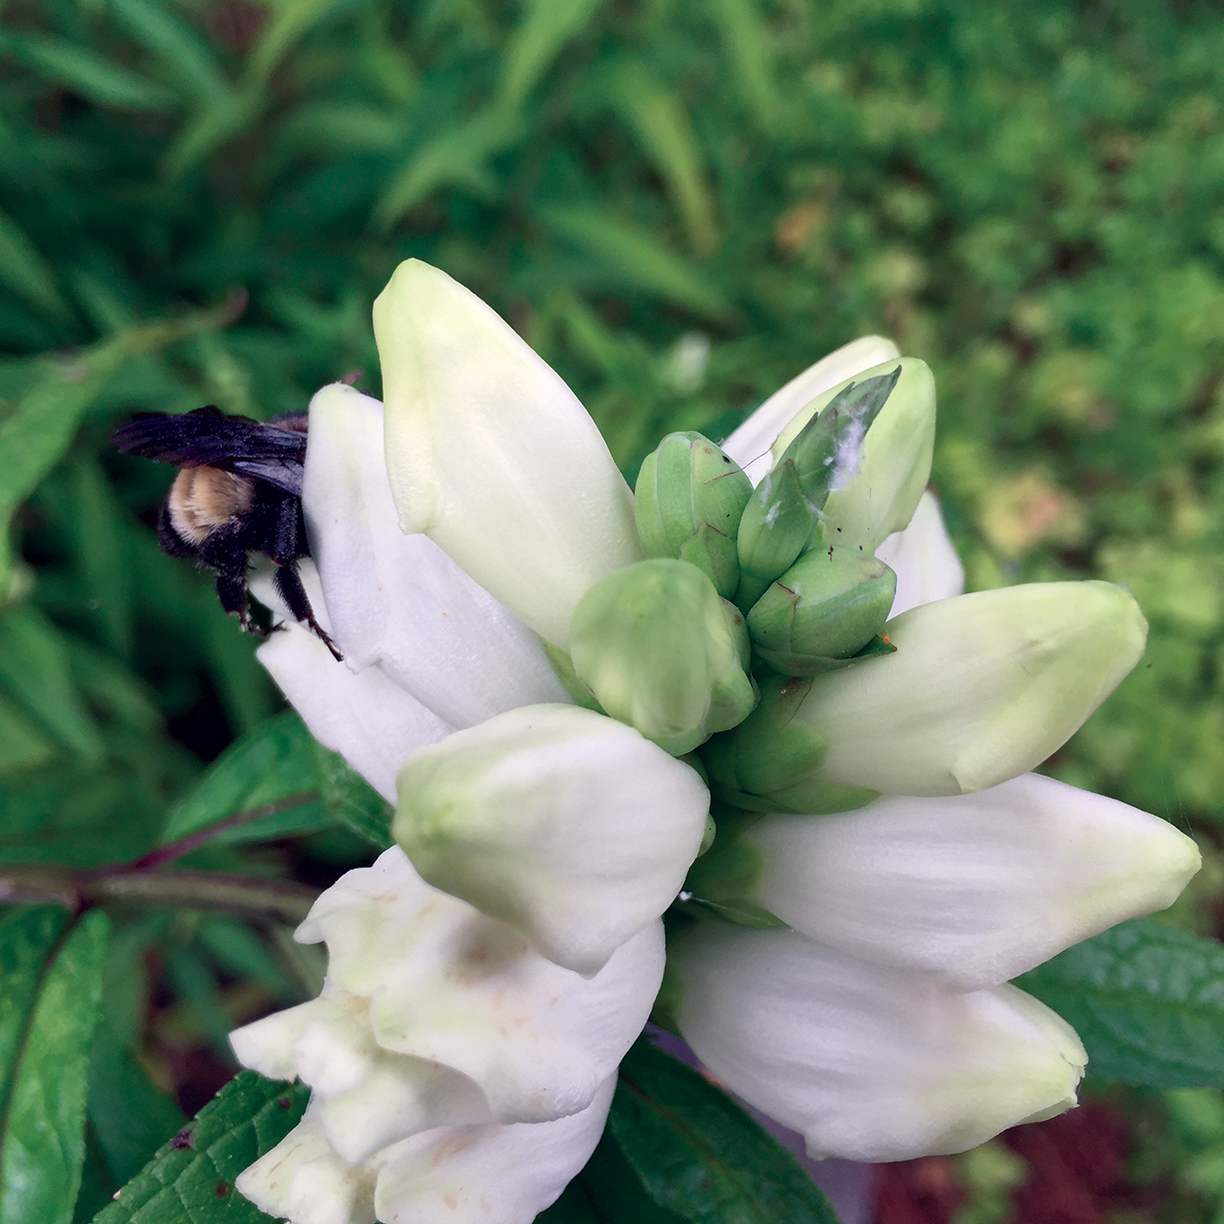 A bee feeding on the nectar of White Turtlehead,  Chelone glabra. This plant is also a nectar source for butterflies and is a larval host of the Baltimore Checkerspot butterfly  (Euphydryas phaeton). Photo by Trista Imrich.Photo cannot be reproduced without permission.